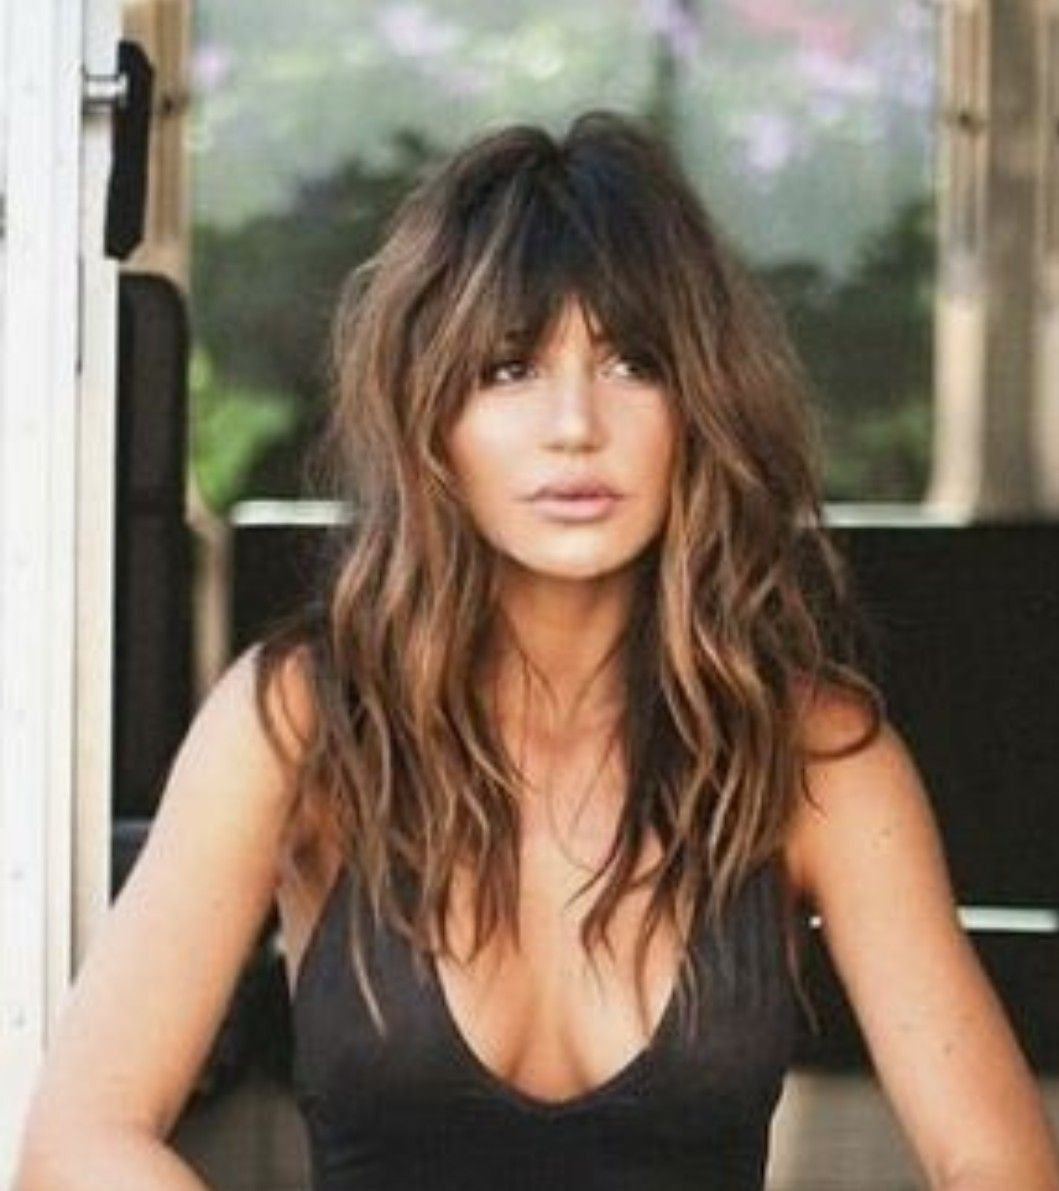 Gorgeous Long Wavy Hair With Bangs Love The Dark Bangs And Highlights At The Side Hair Styles Long Hair Styles Long Wavy Hair